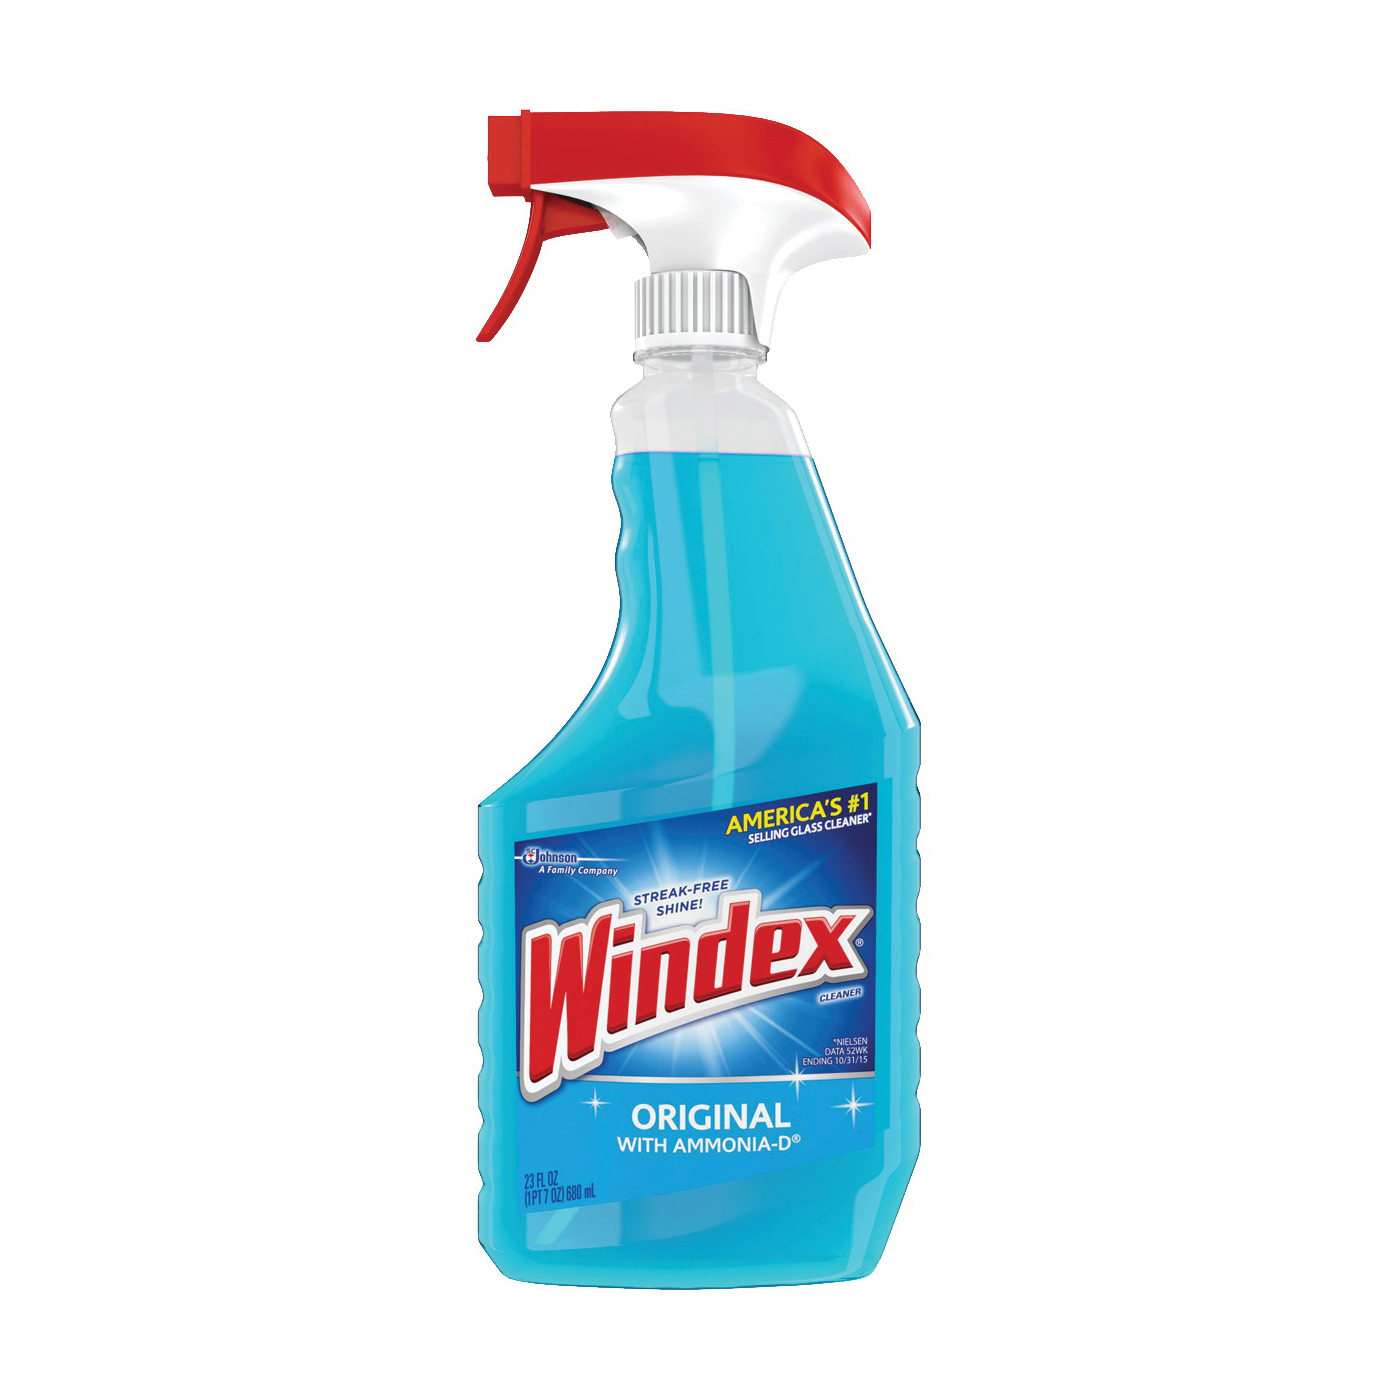 Picture of Windex 70195/70343 Glass Cleaner, 23 oz Package, Bottle, Liquid, Floral, Blue